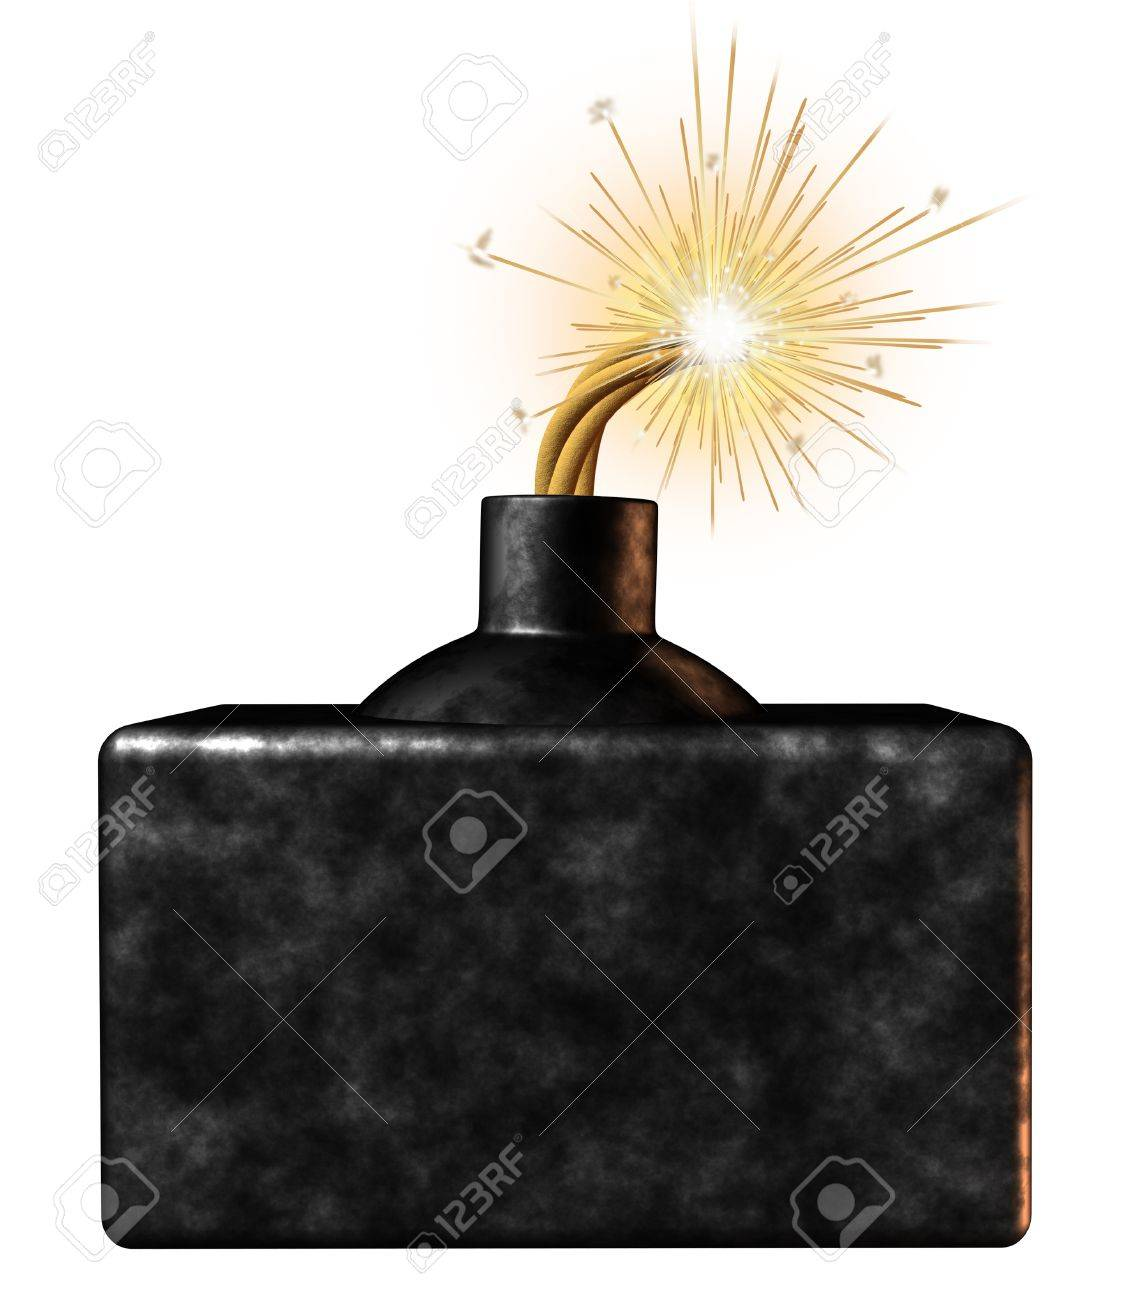 Explosive blank bomb sign with an ignited burning dangerous weapon device on the verge of exploding as an urgent limited time announcement advertisement for important time sensitive message on a white background Stock Photo - 17335527